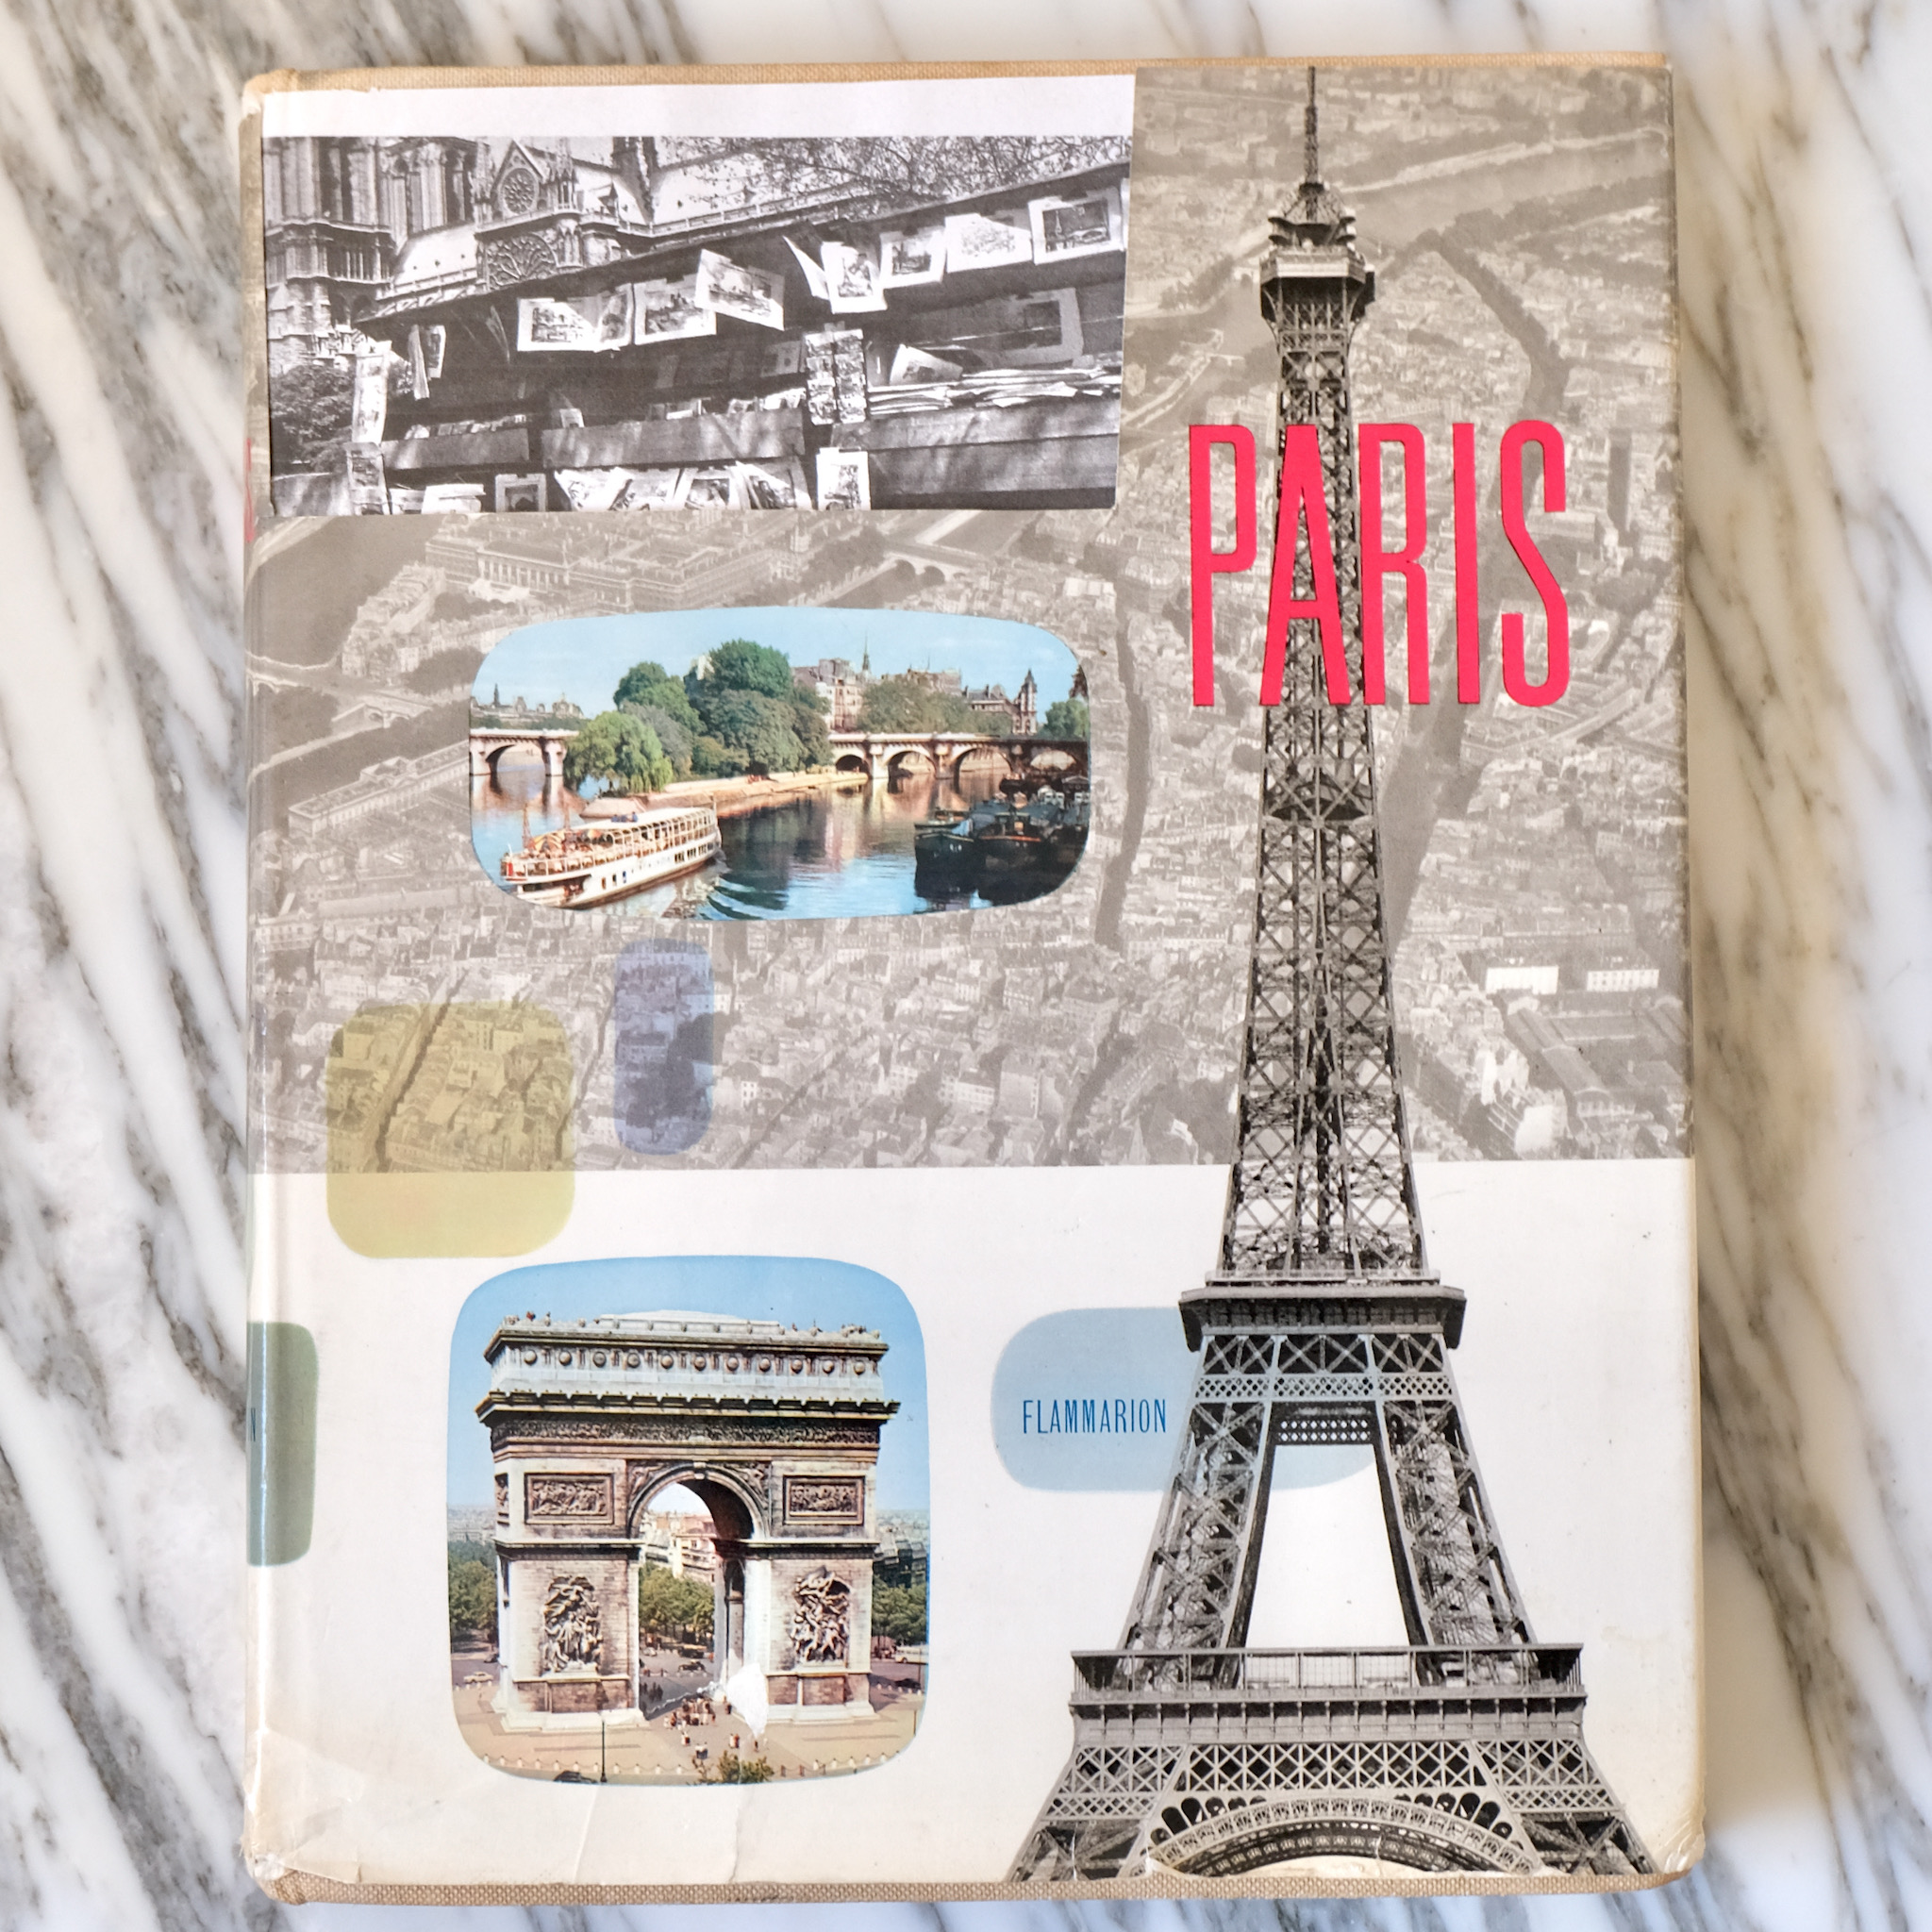 Paris Flammarion book bouquinistes auction